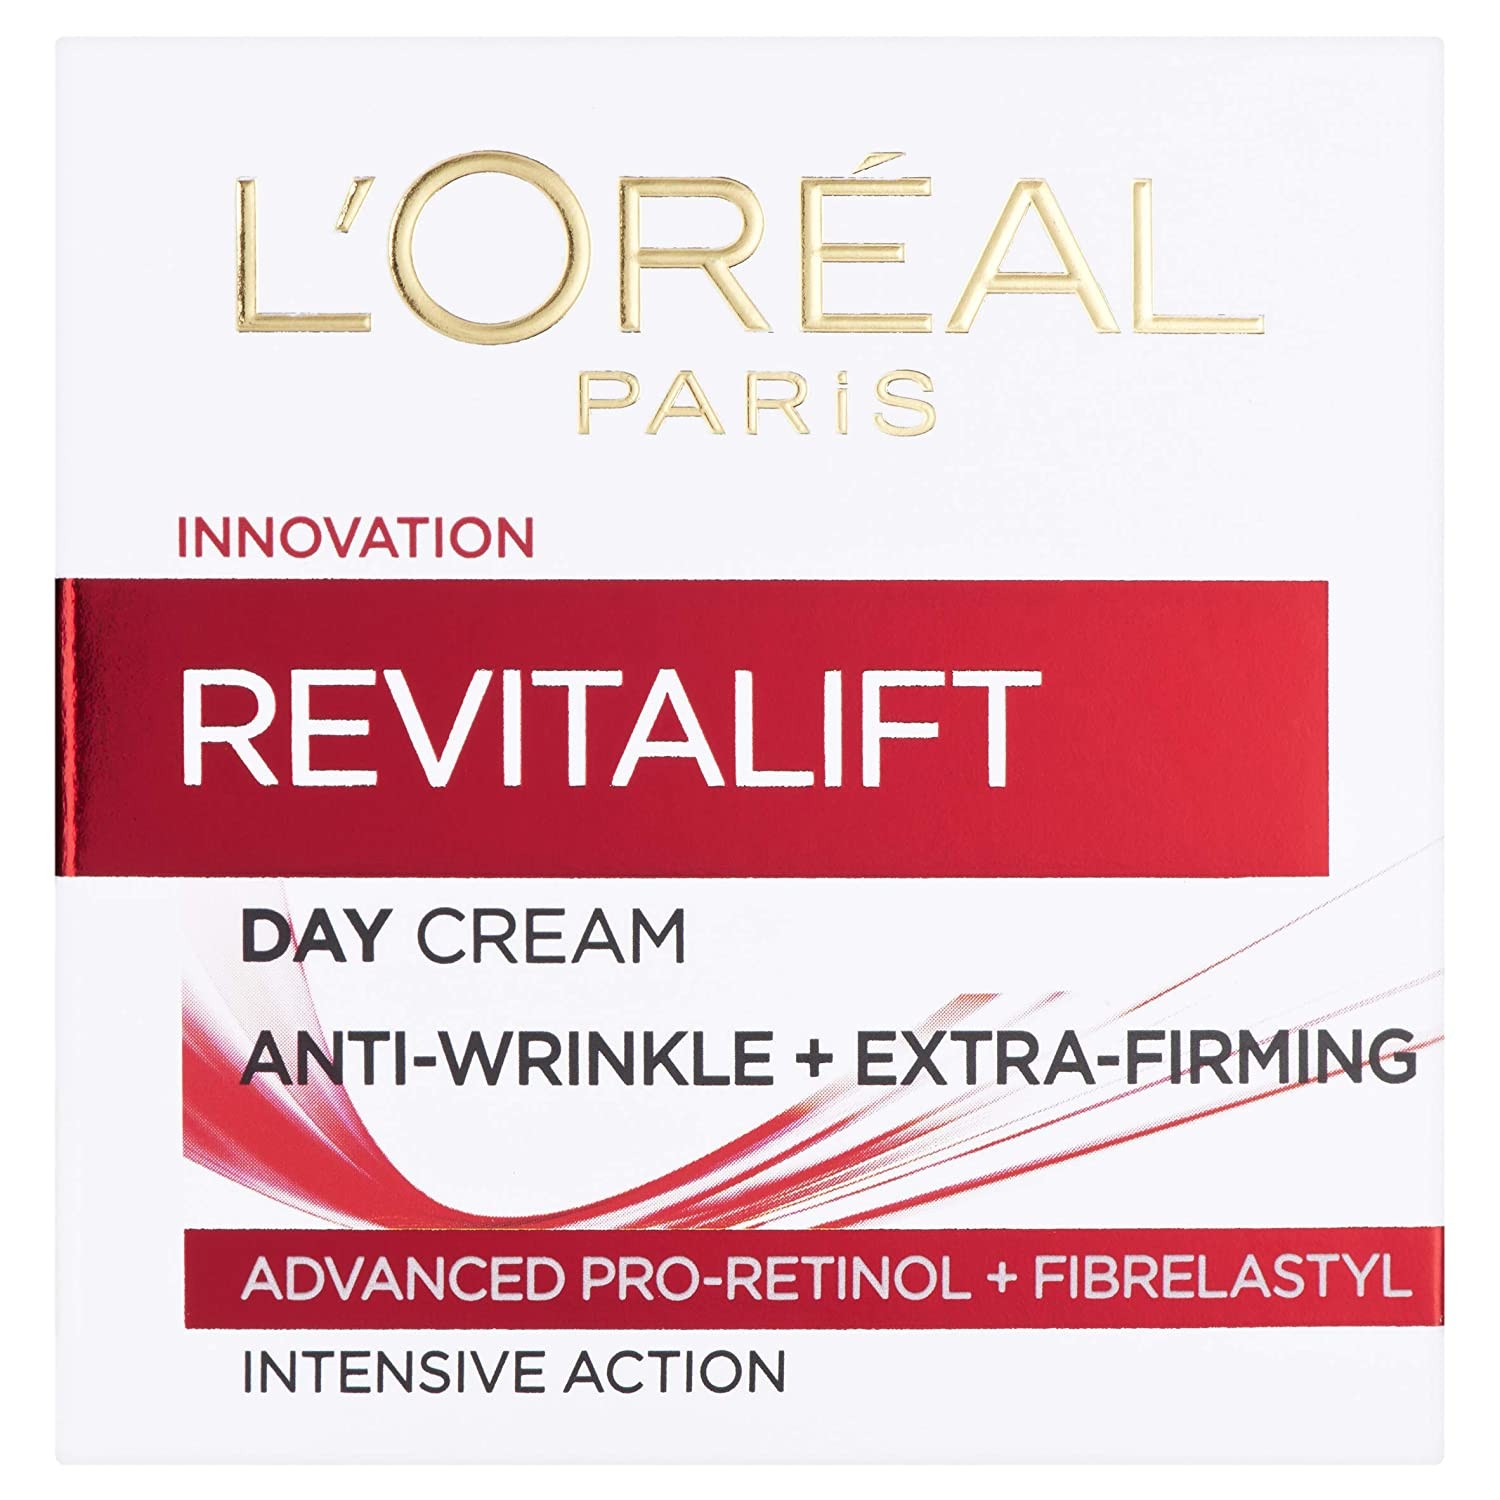 WHOLESALE LOREAL REVITALIFT HYDRATING DAY CREAM ANTI-WRINKLE + EXTRA FIRMING 1.7 OZ - 48 PIECE LOT